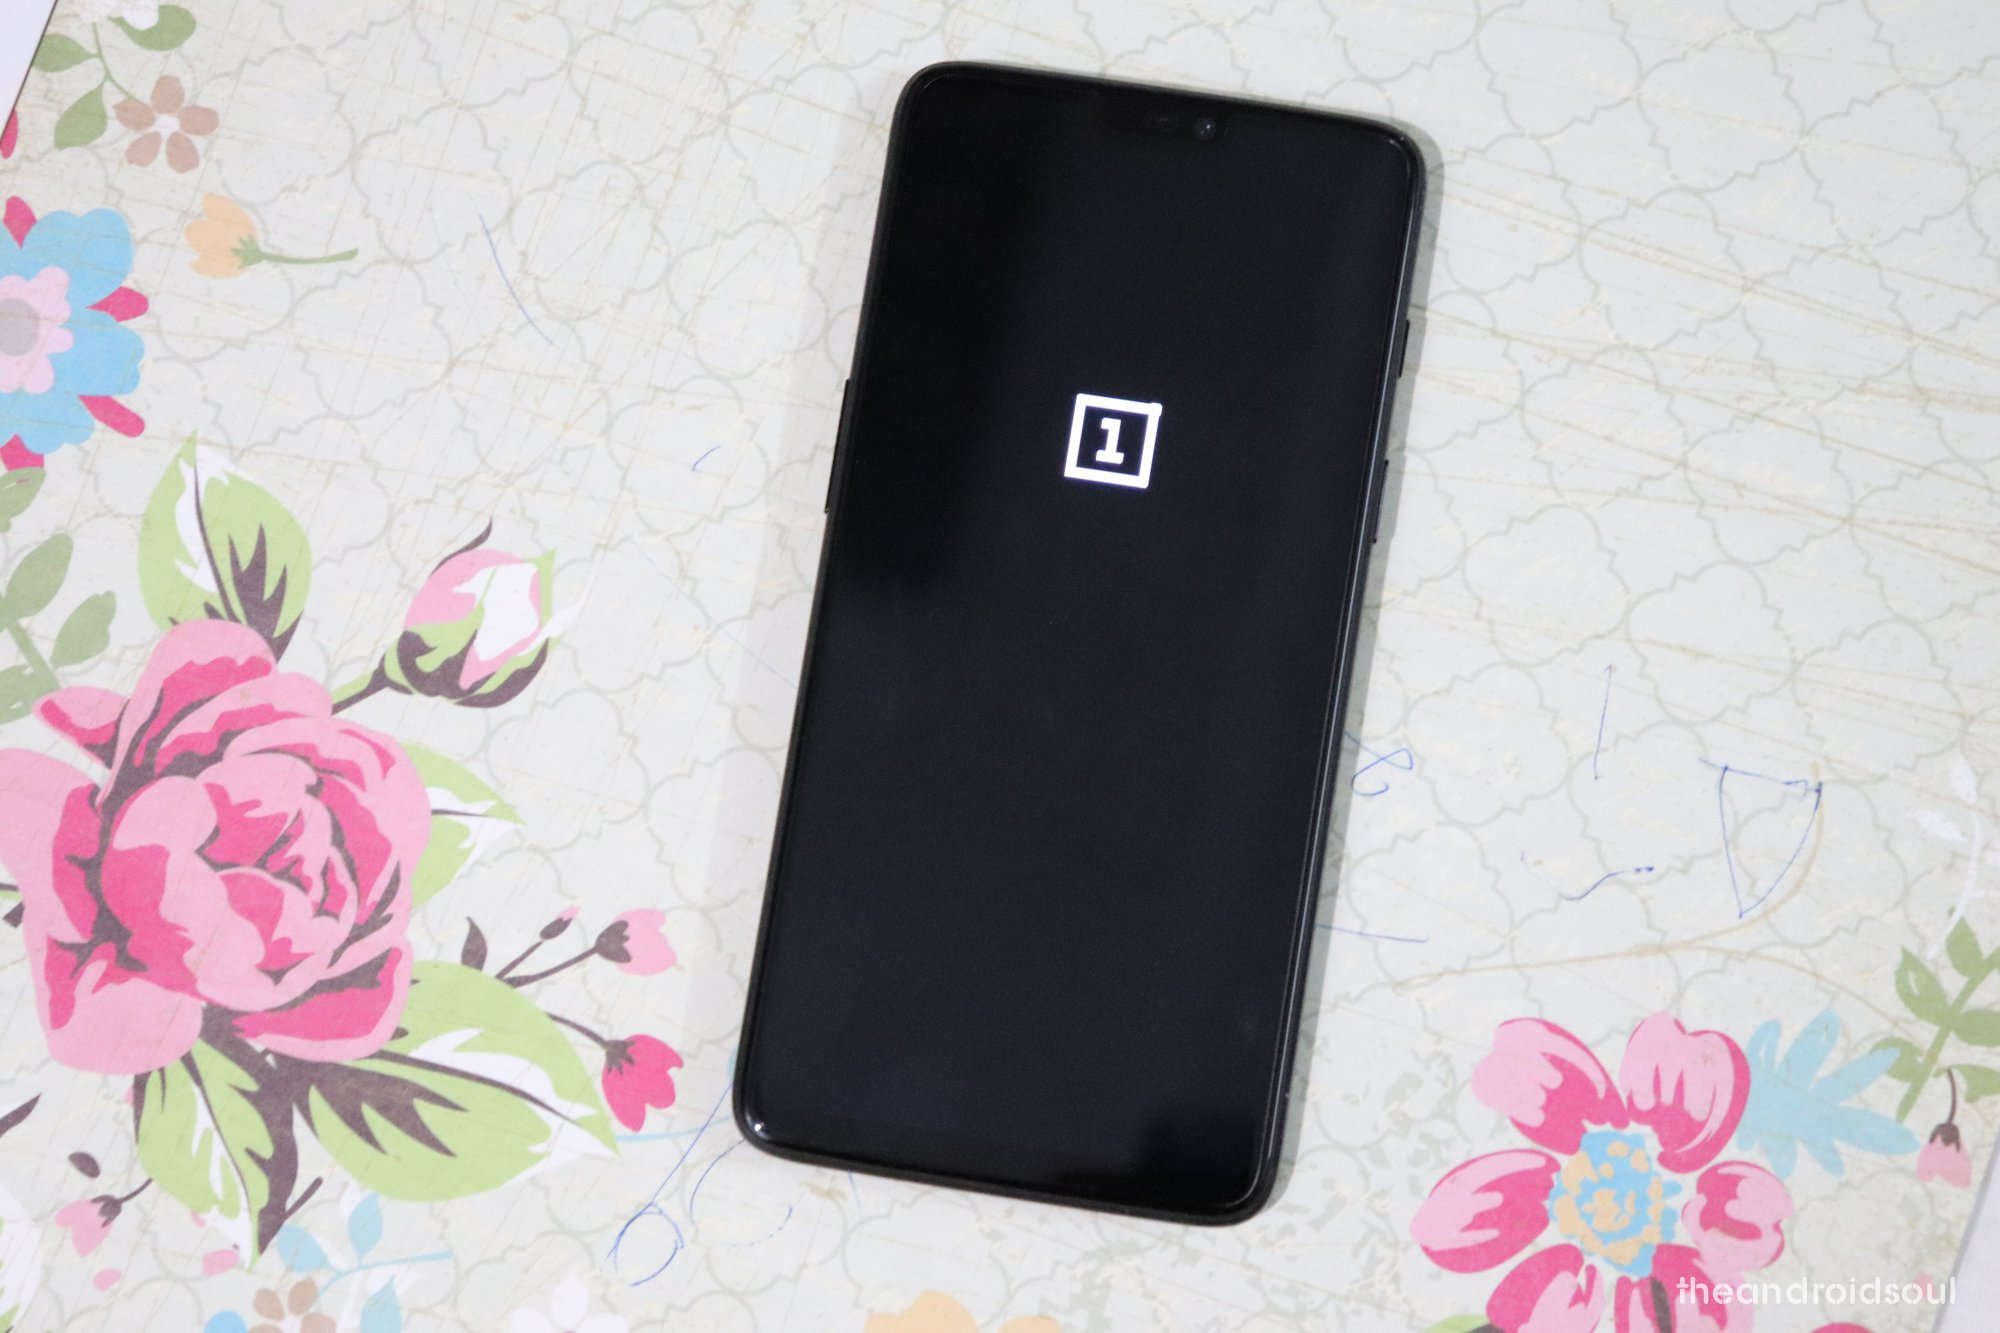 OnePlus 6 Android 9 Pie root